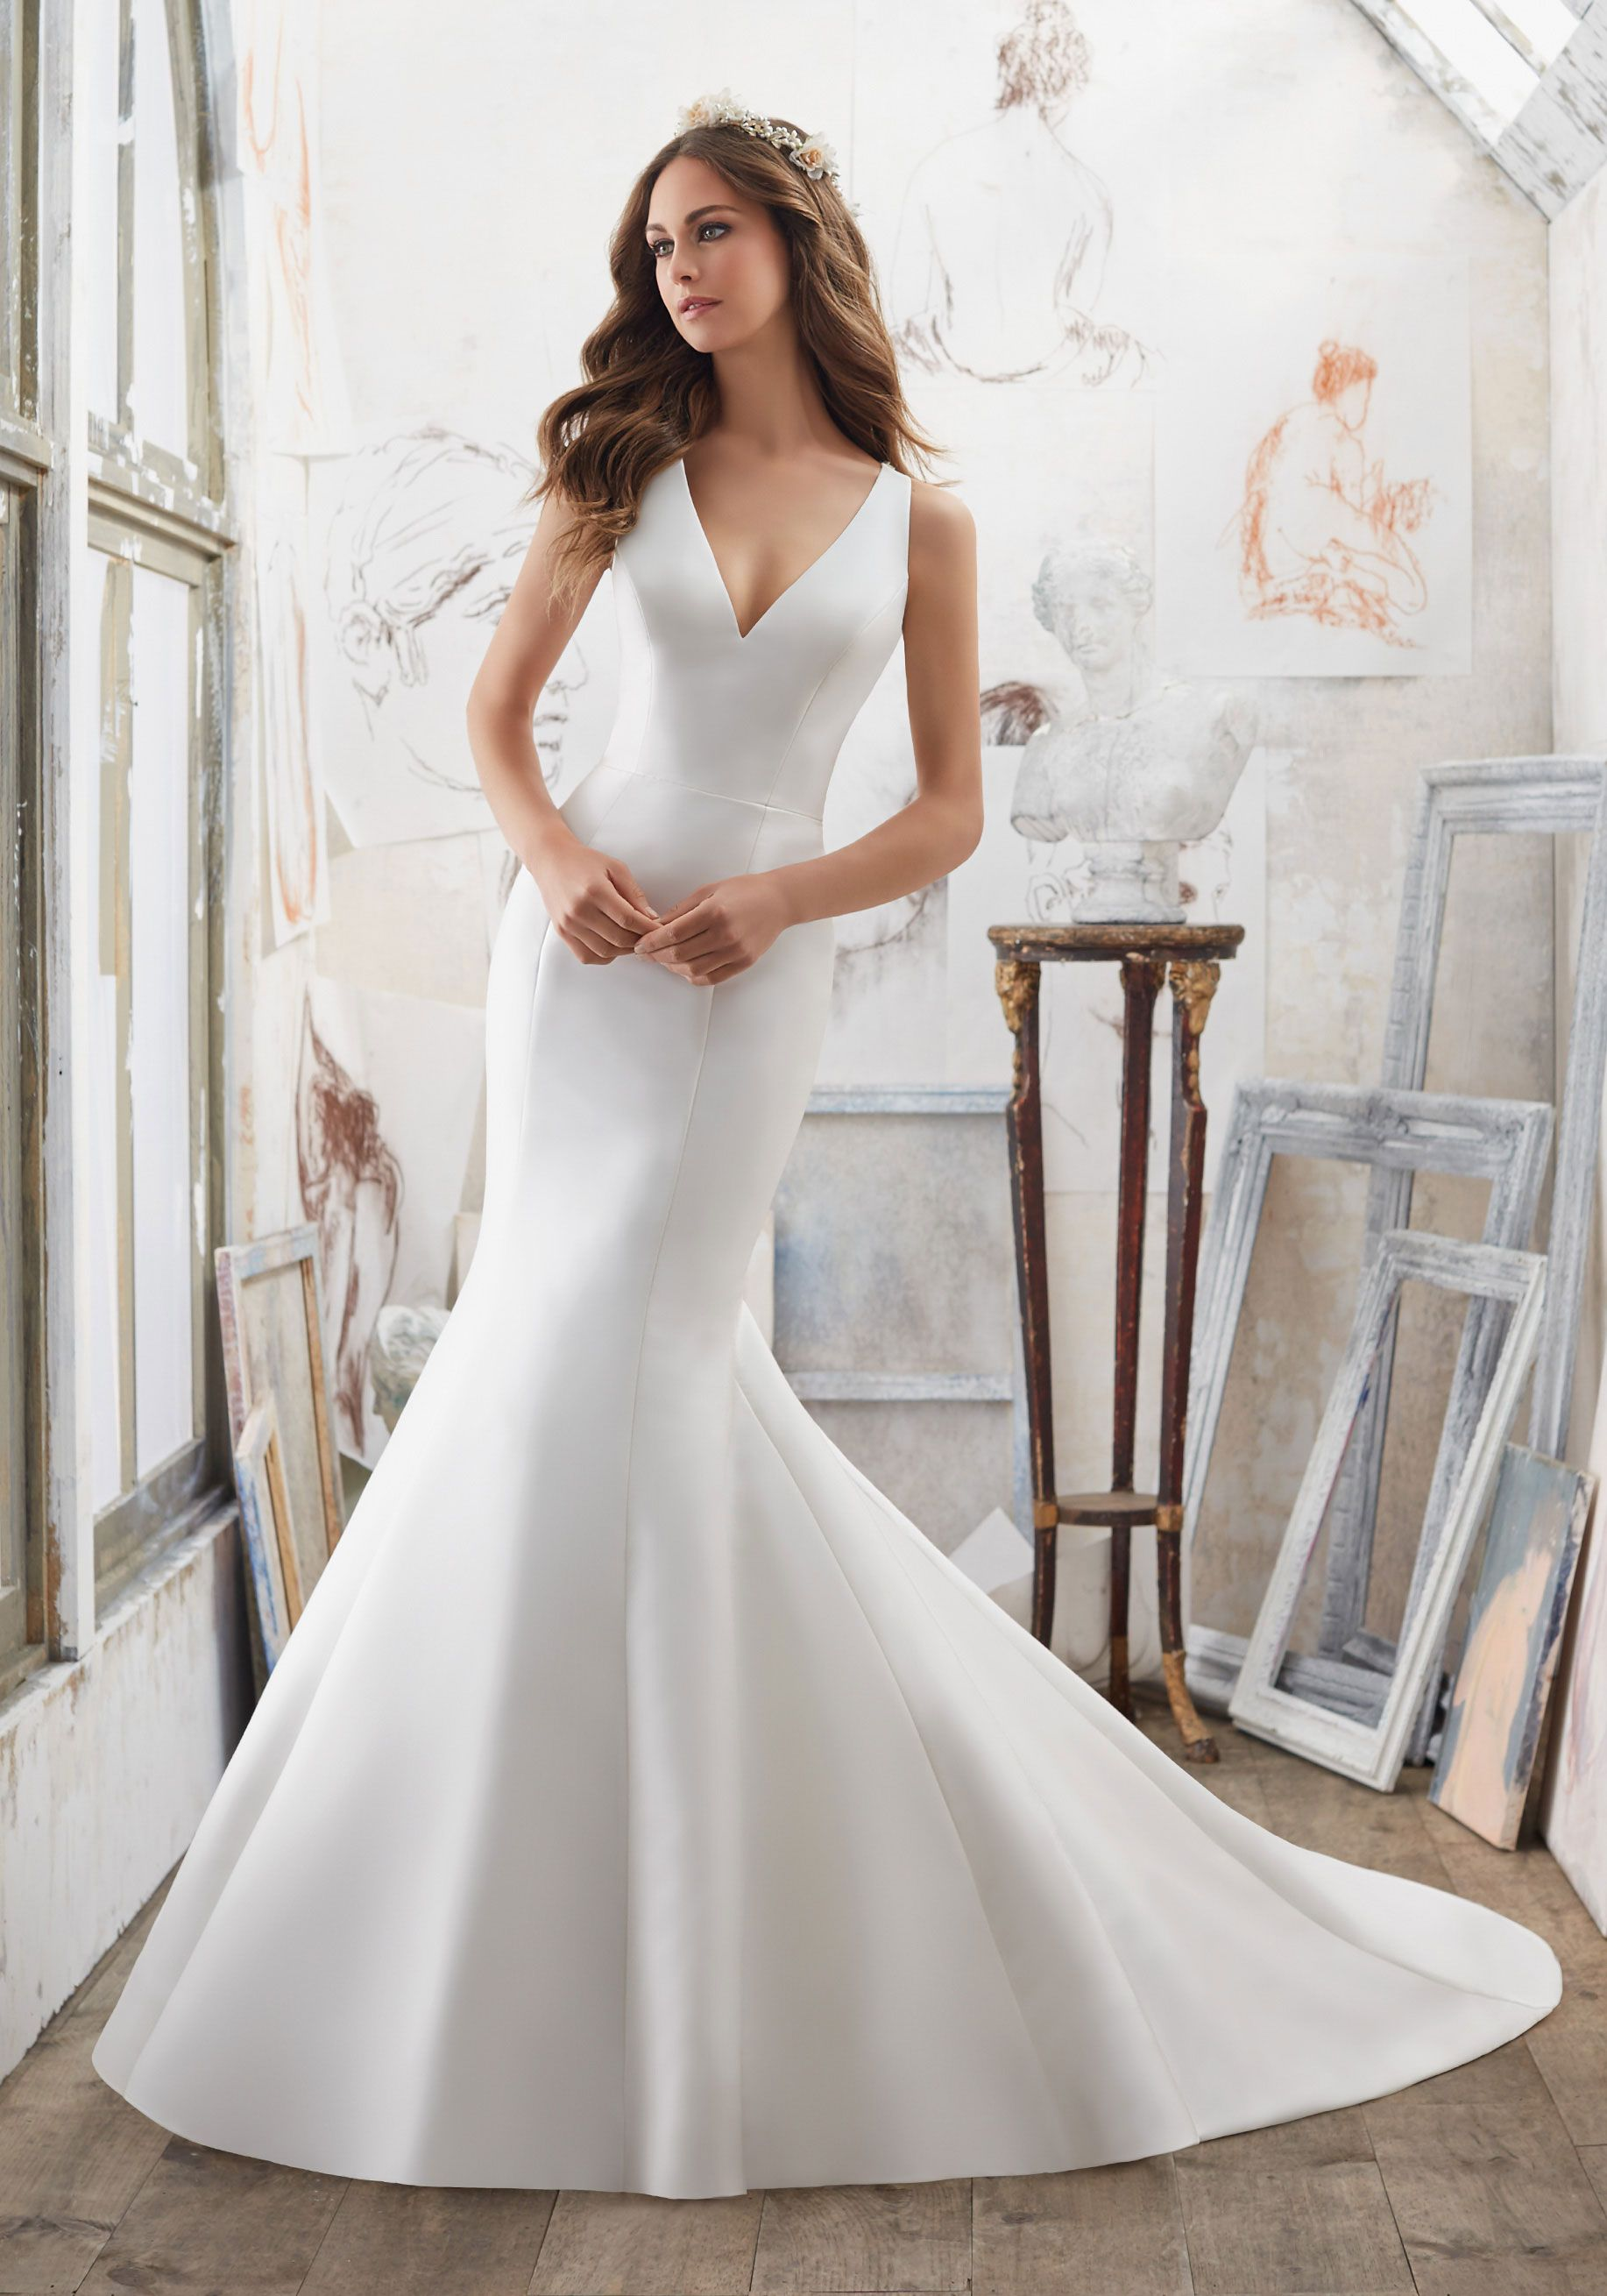 1d5a208e0dba The Perfect Combination of Simple and Chic, This Larissa Satin Fit & Flare  Wedding Dress Features Stunning Crystallized Back Detail.